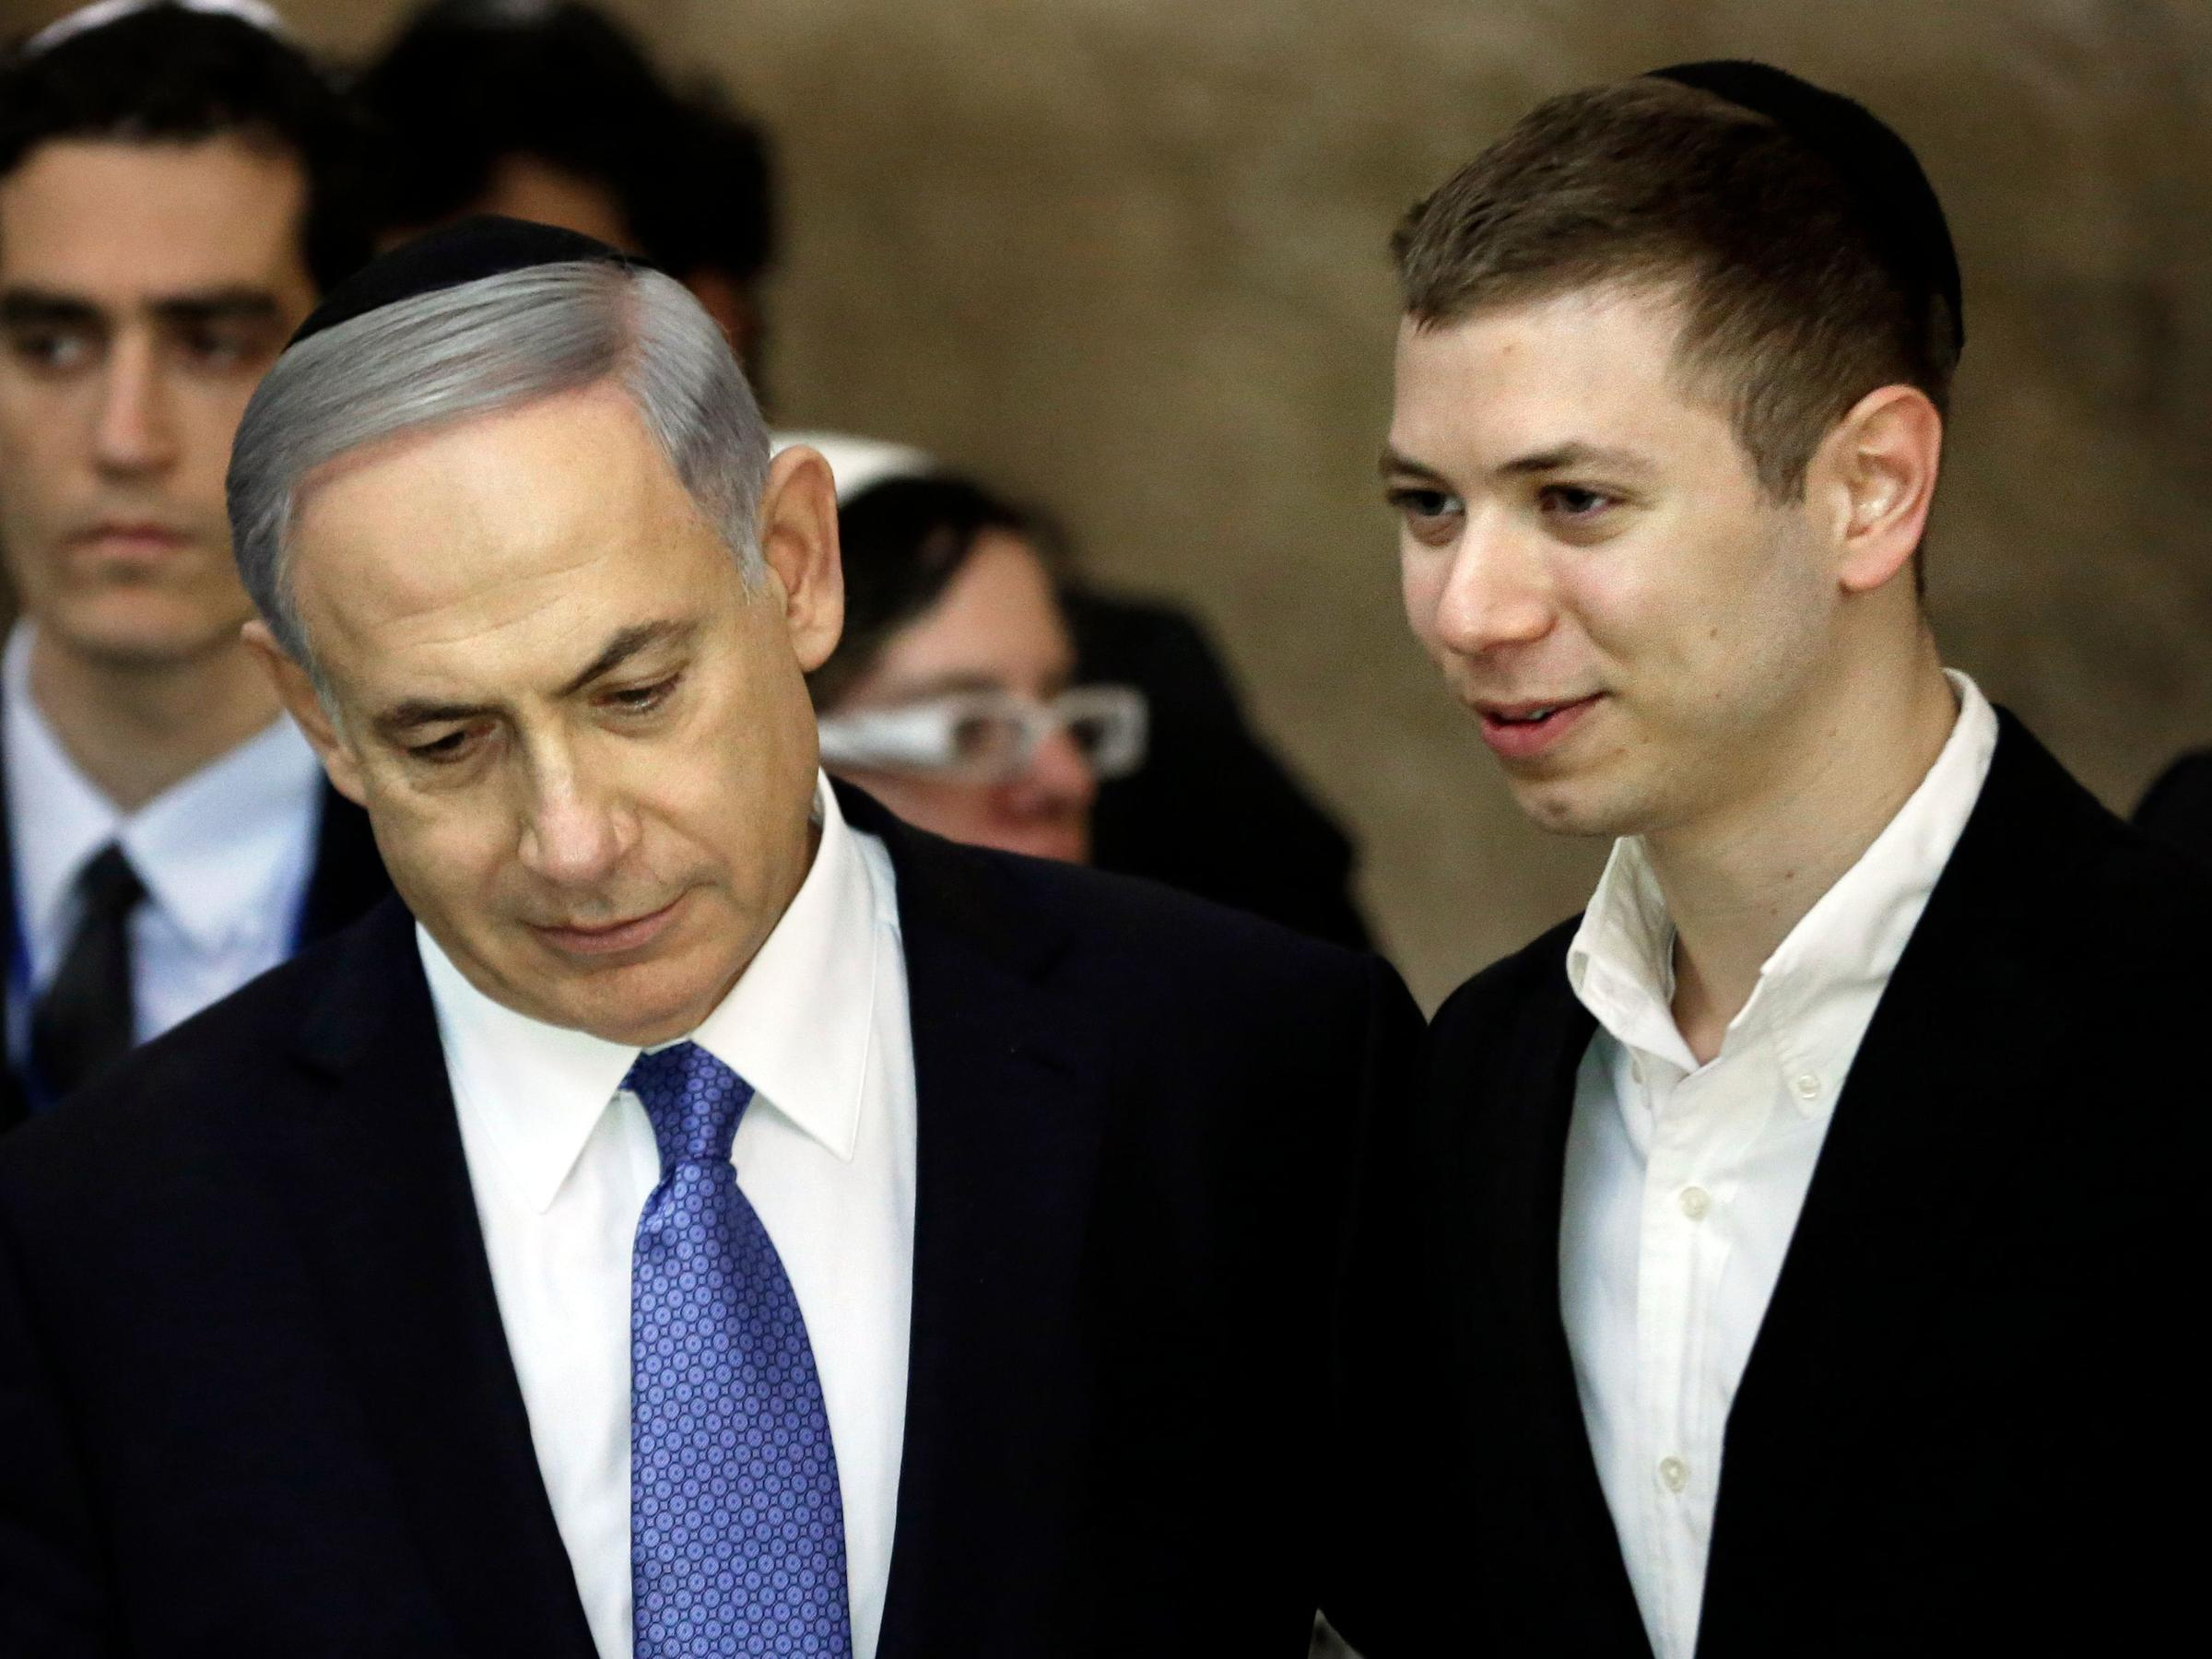 Netanyahu defends son taped illicitly outside strip club